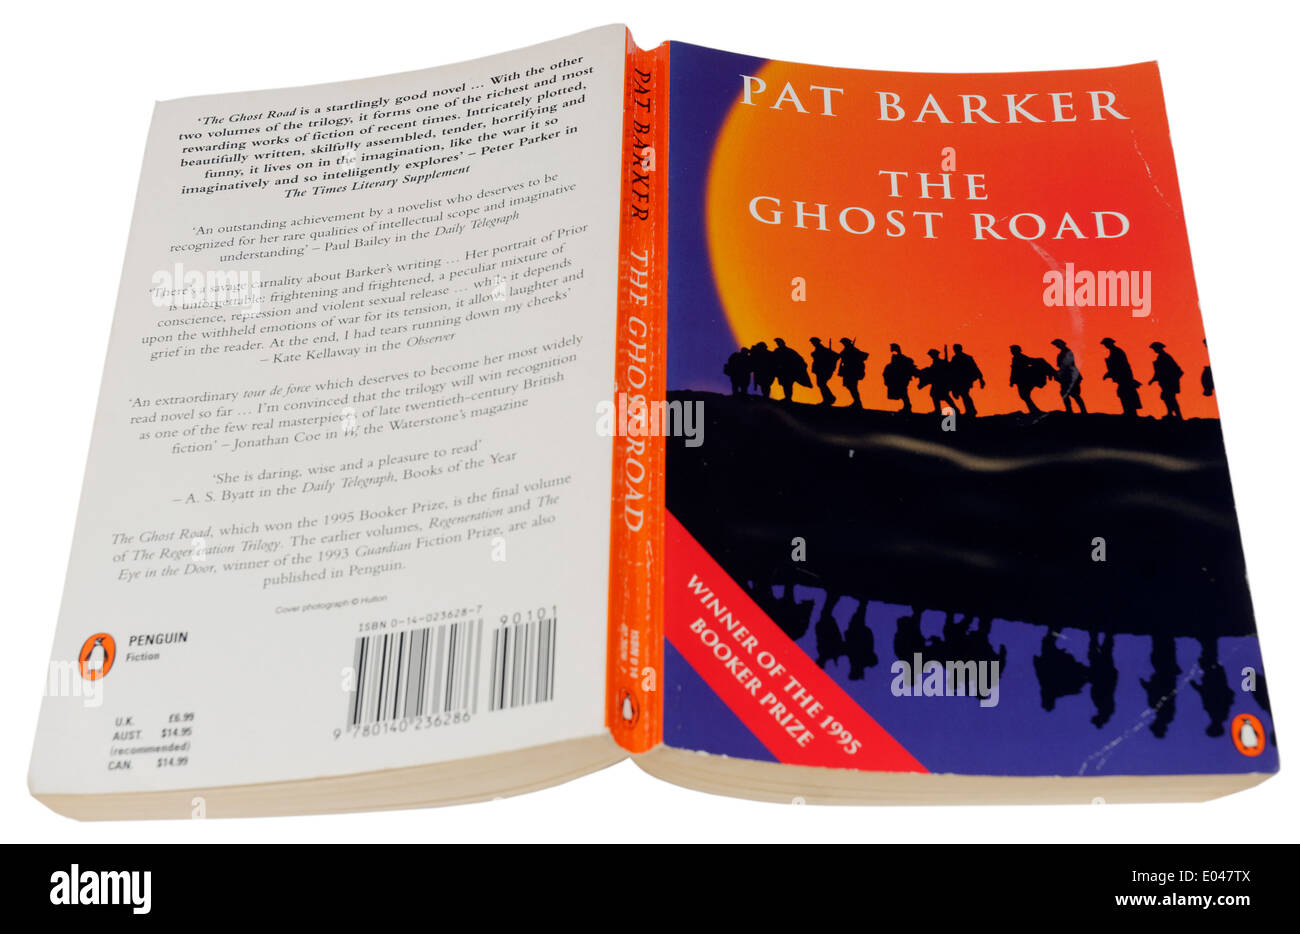 The Ghost Road by Pat Barker, part of the Regeneration Trilogy - Stock Image